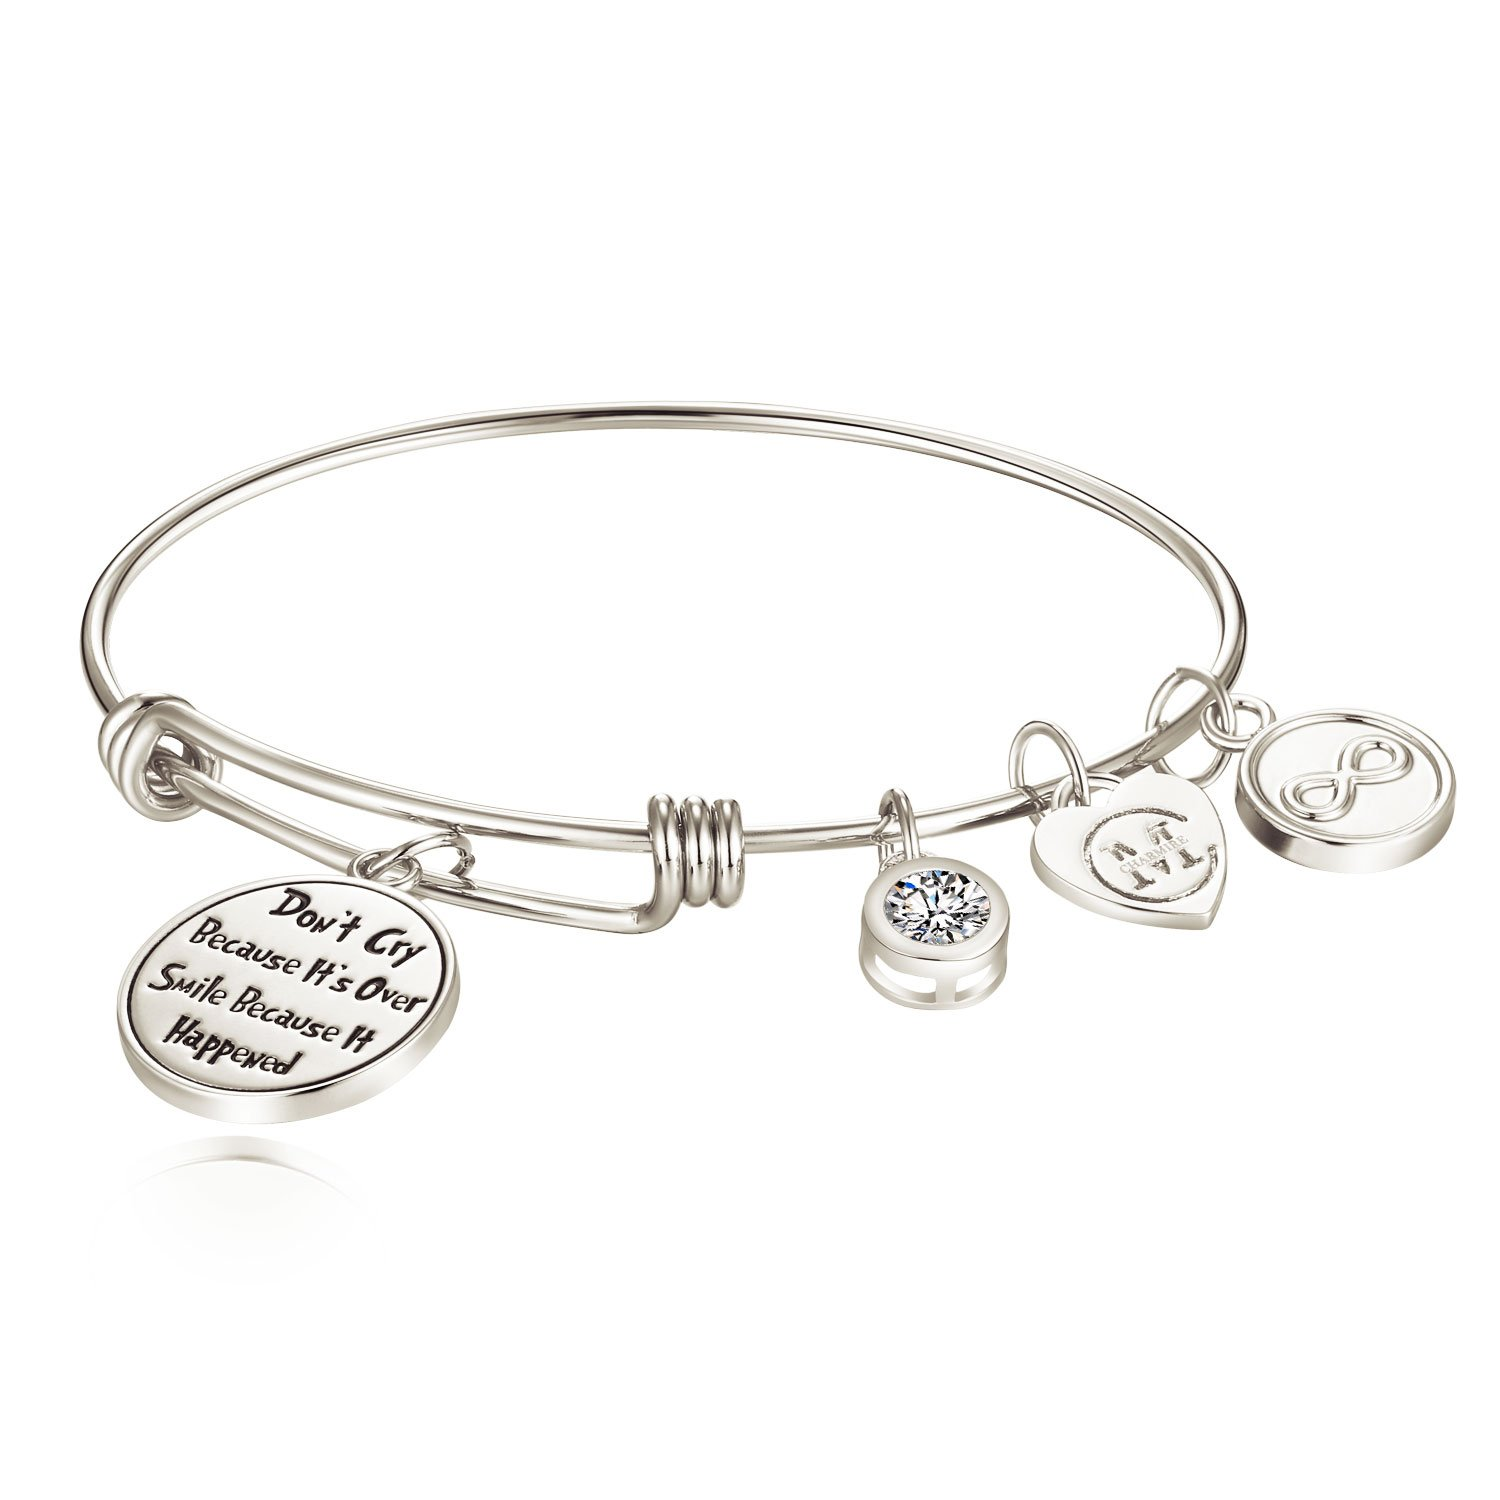 Inspirational Charm Engraved Bangle Bracelet for Women Girl Graduate Student Daughter Granddaughter Friend Charmire CMB012RG